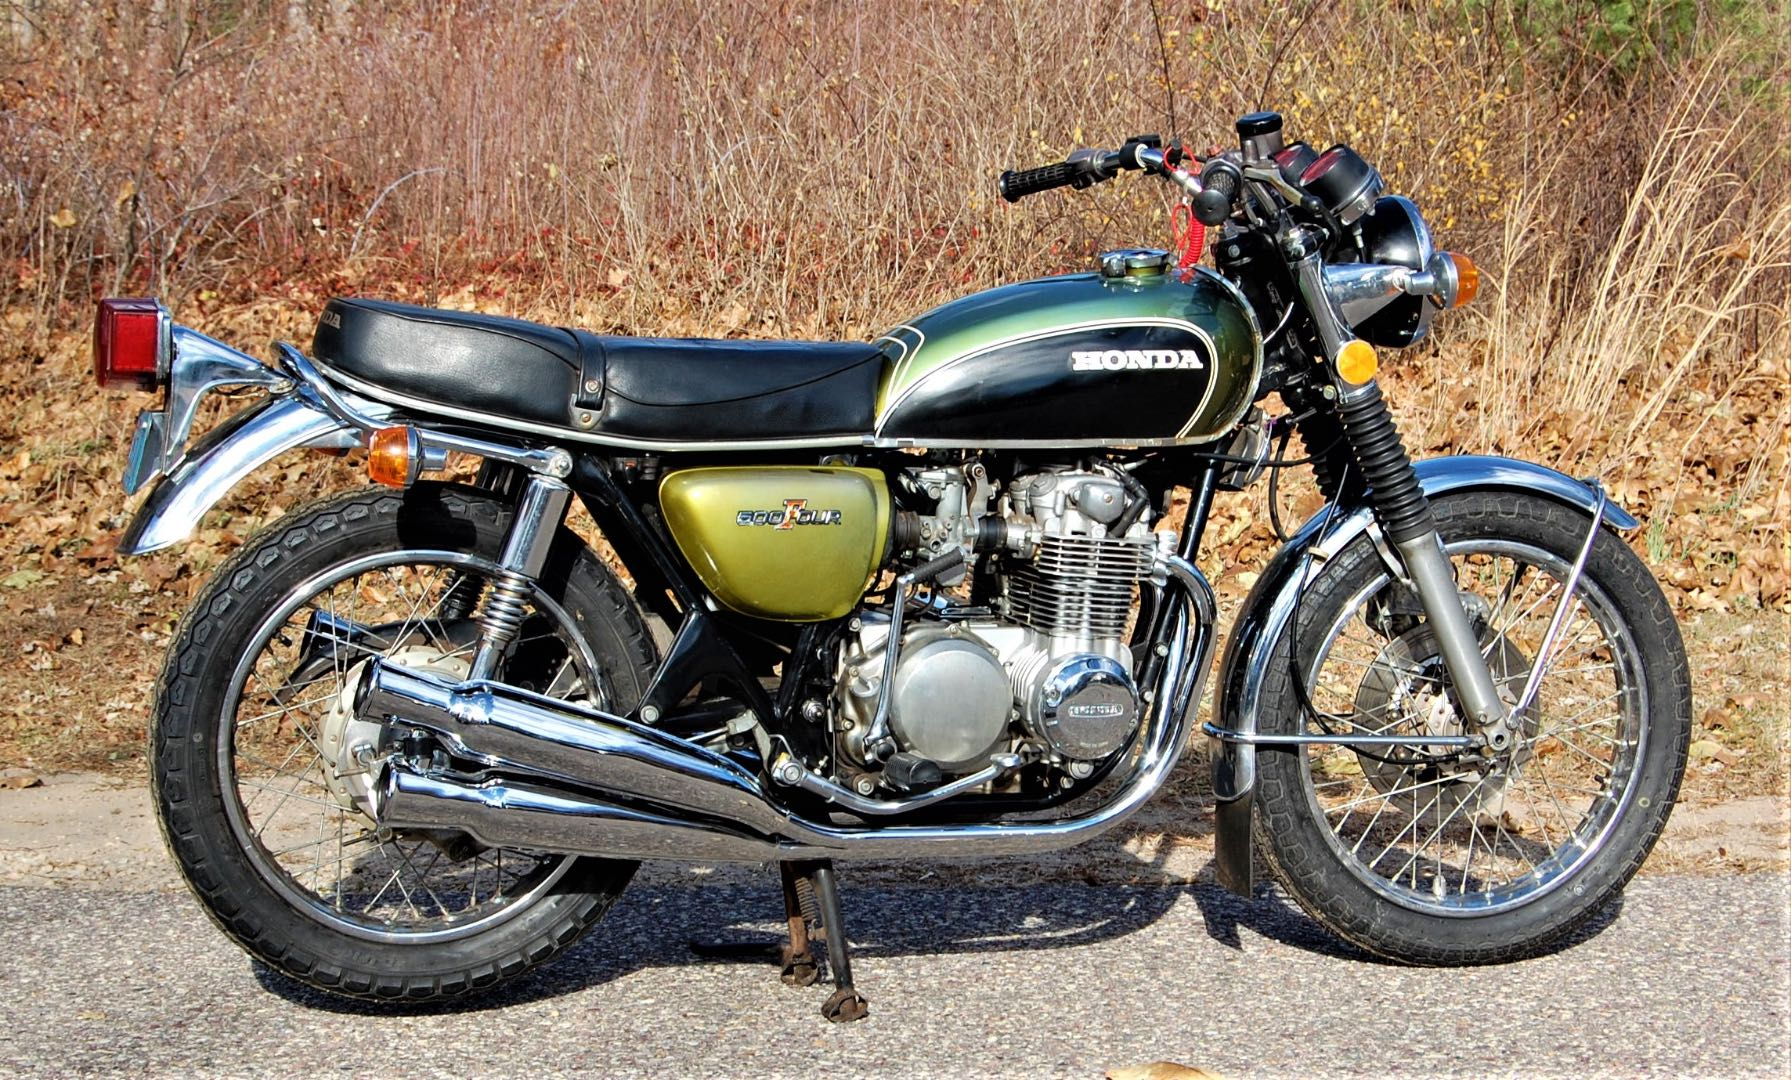 1973 Honda CB500K2 new pipes rt side: AFTER: November 2020 with the new OEM-spec four-into-four pipes